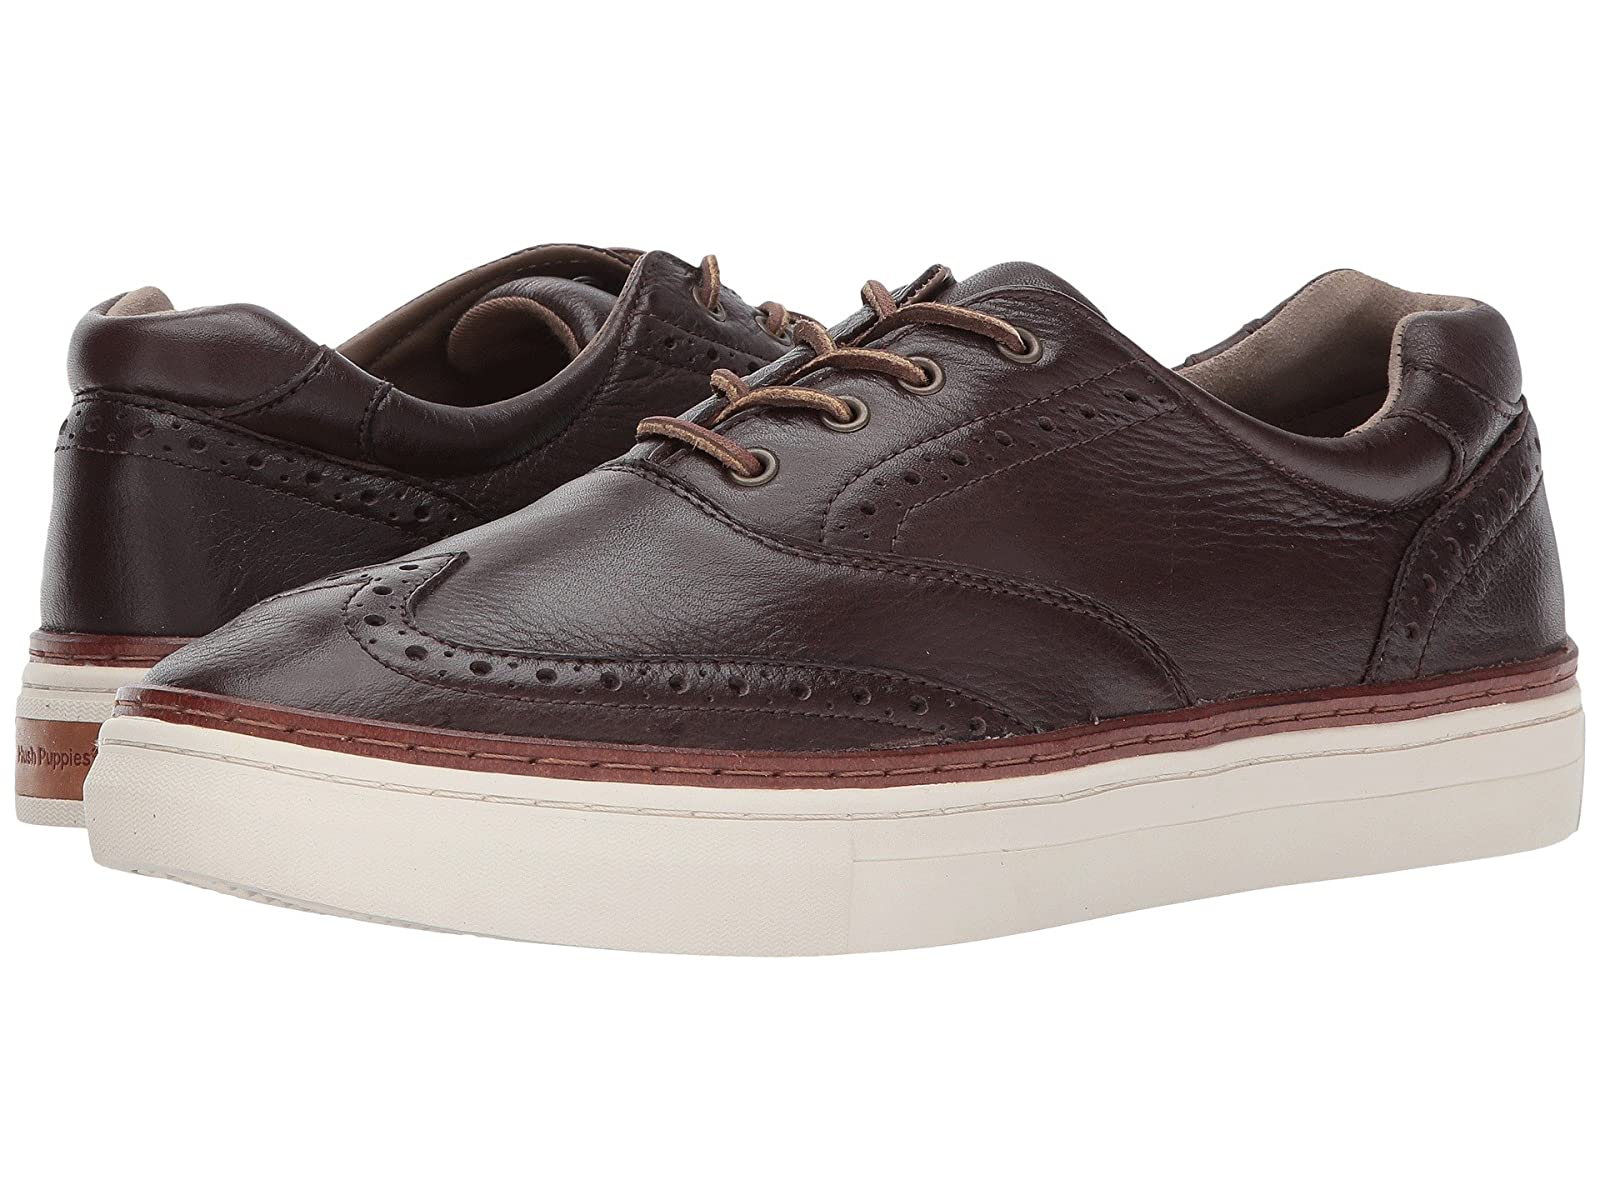 Hush Puppies Fielding ArrowoodCheap and distinctive eye-catching shoes